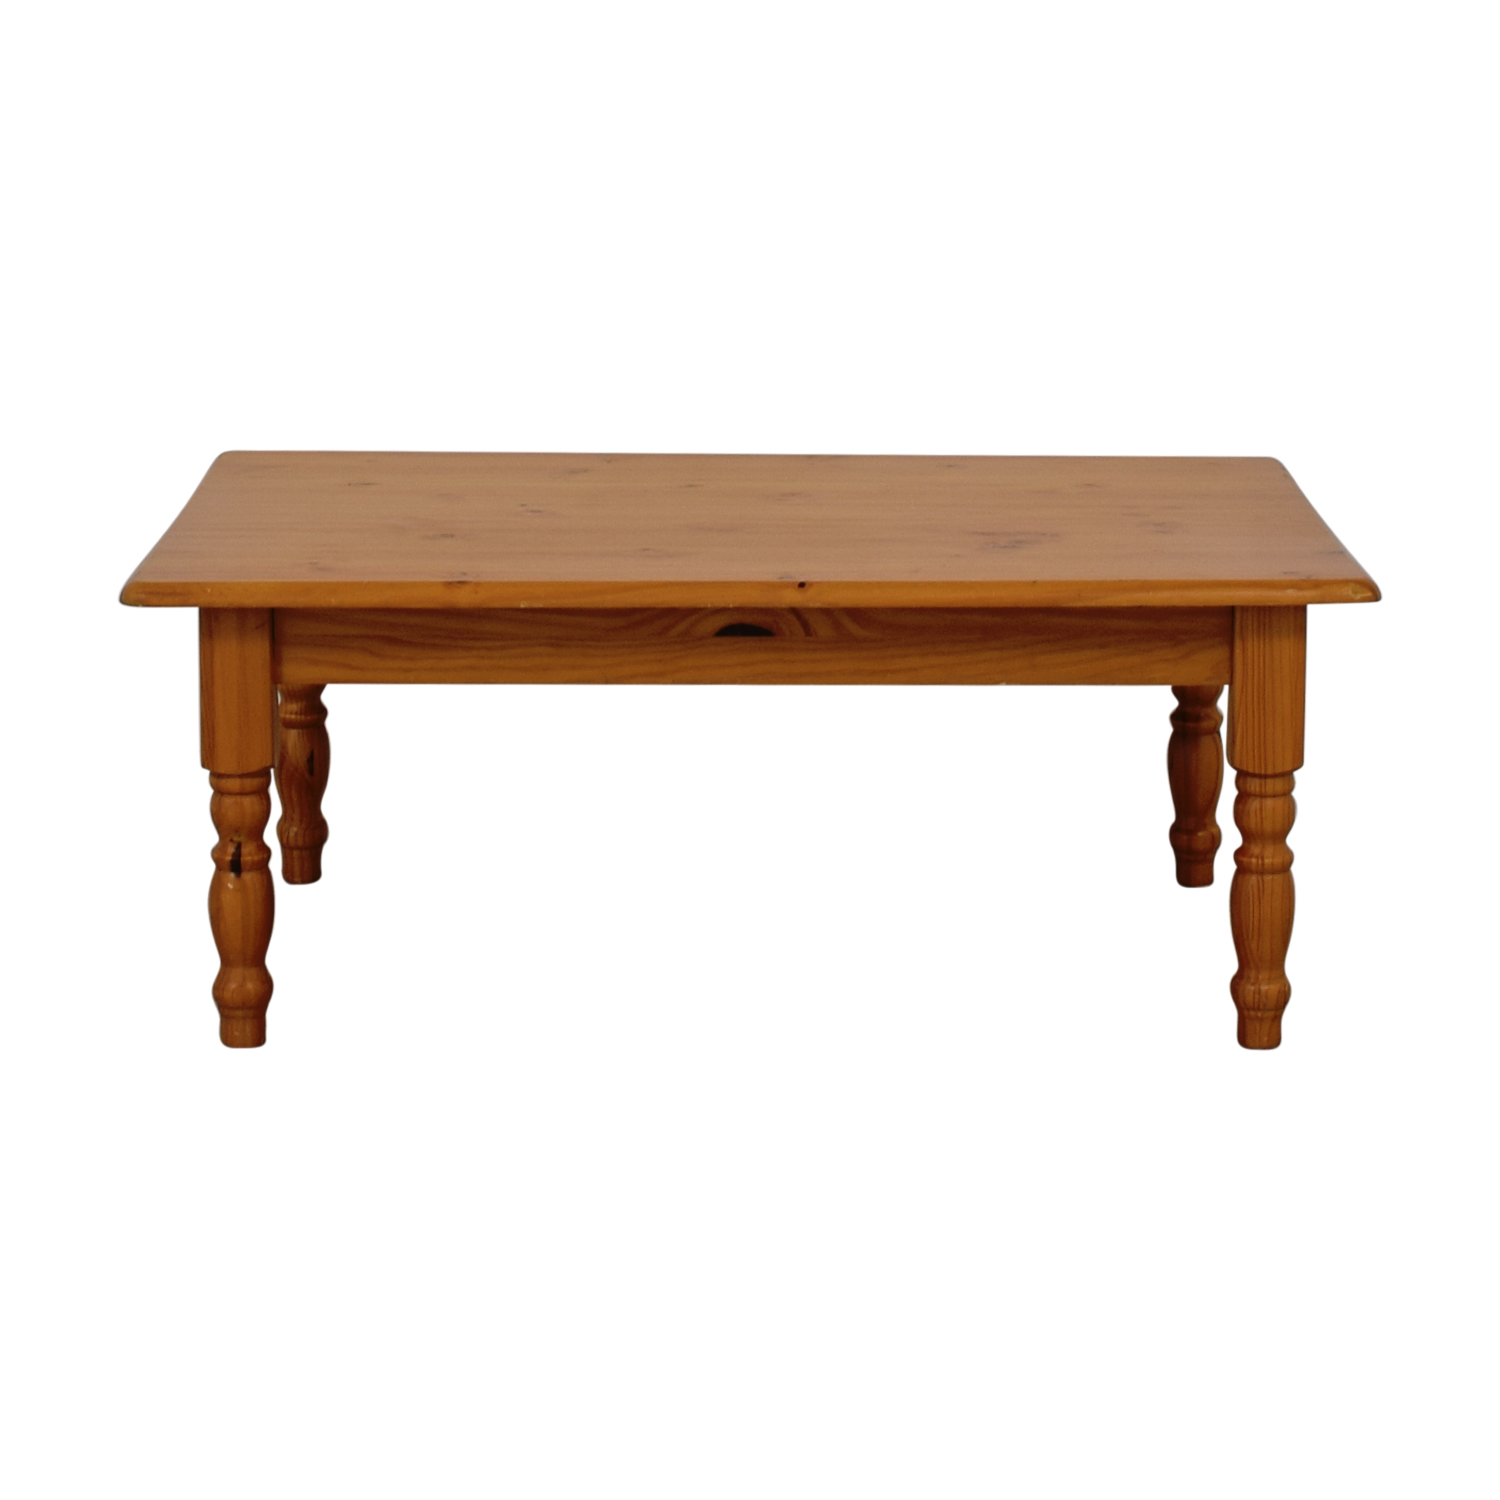 Awe Inspiring 55 Off Gothic Cabinet Craft Gothic Cabinet Craft Natural Wood Coffee Table Tables Gmtry Best Dining Table And Chair Ideas Images Gmtryco